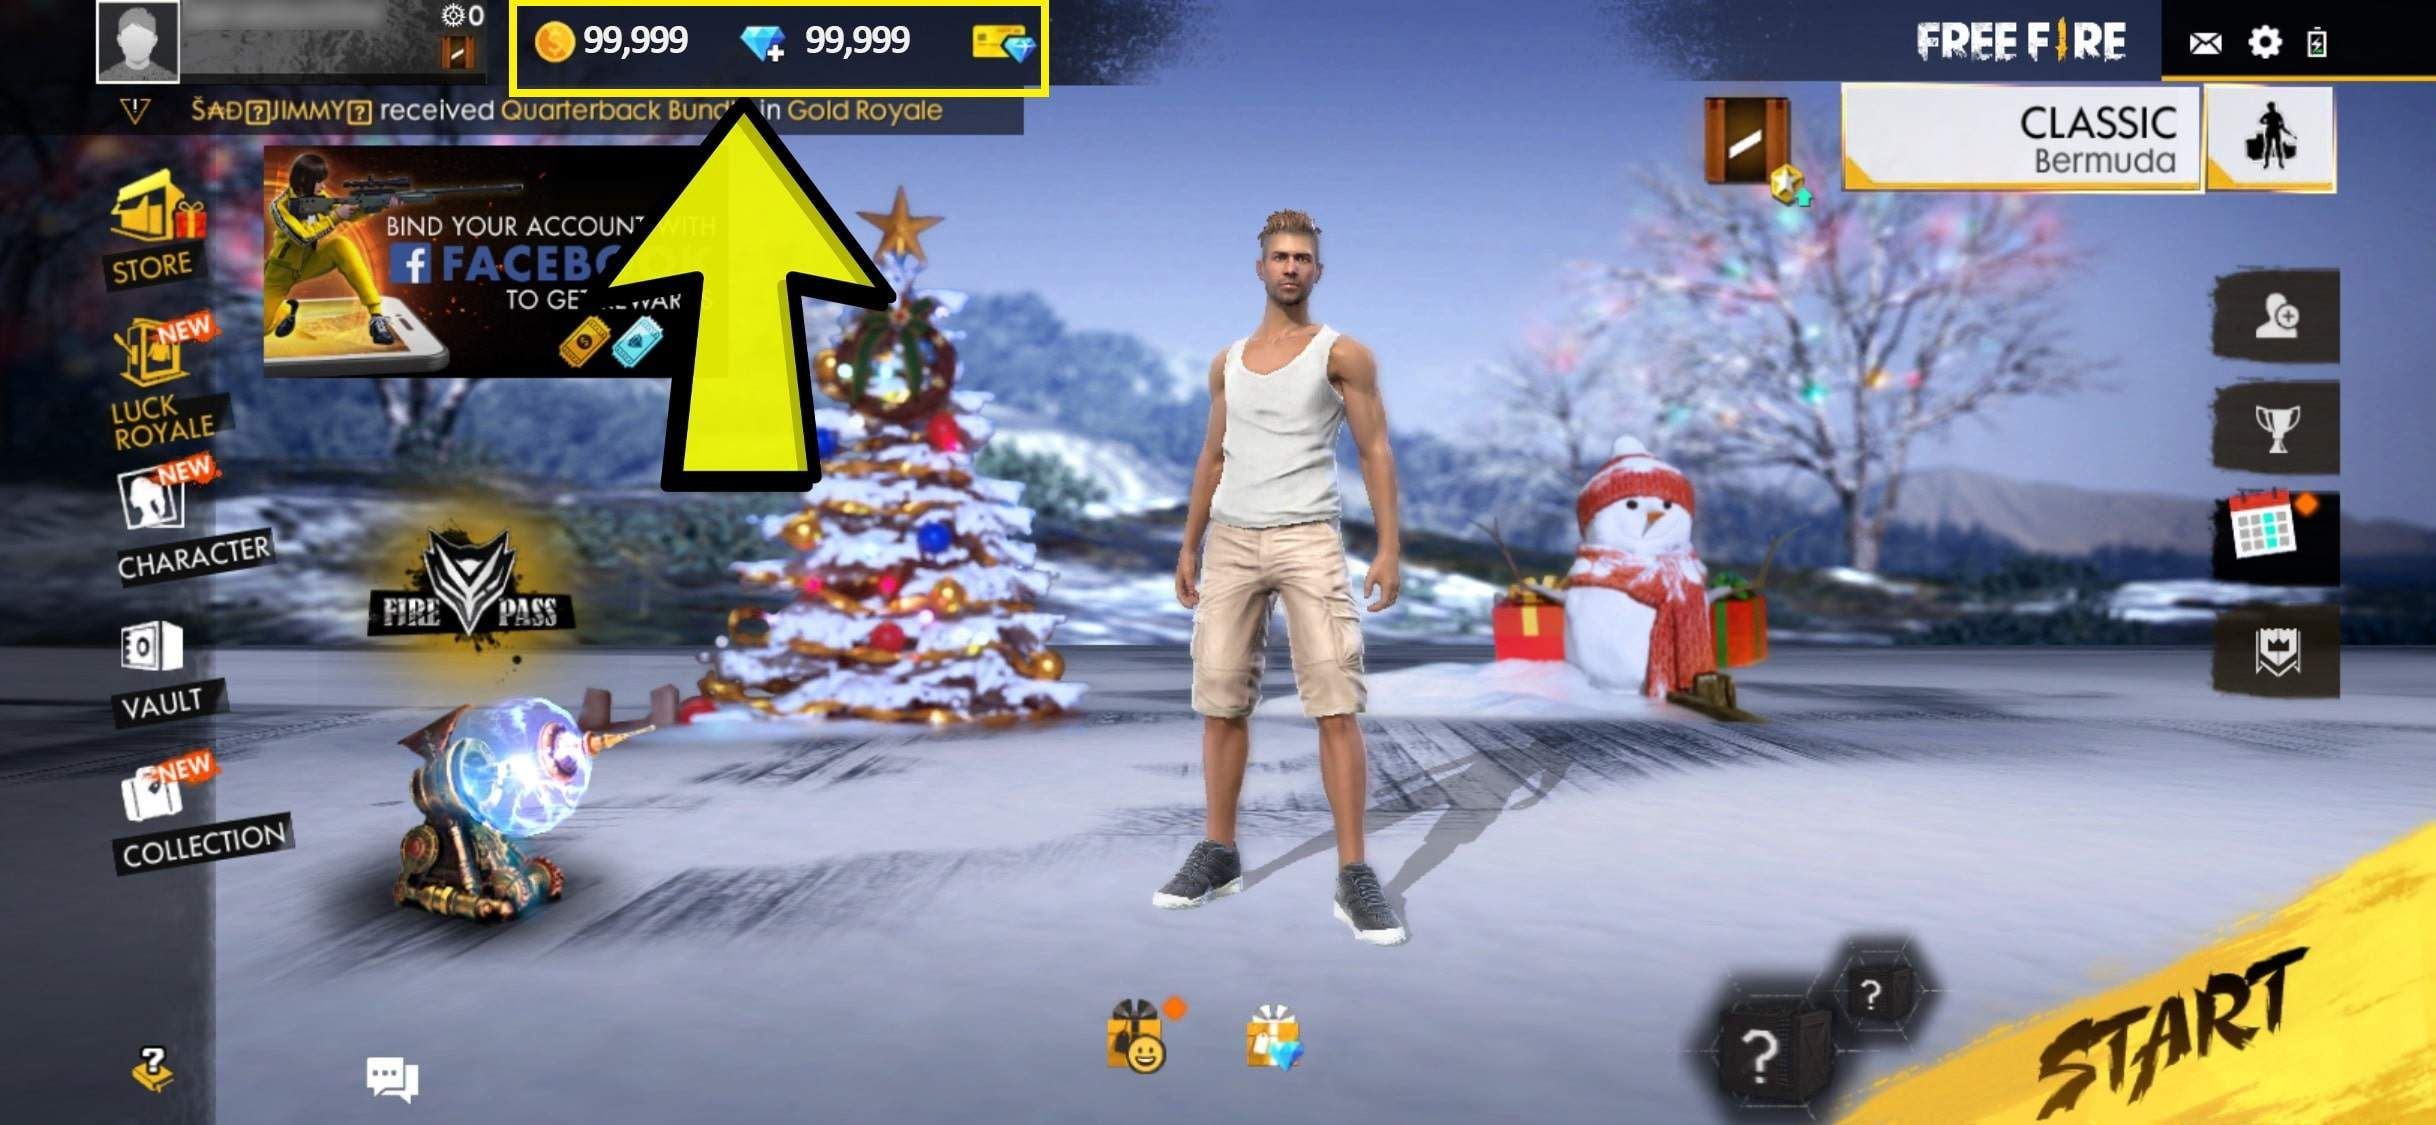 Free Fire Cheat In 2020 Android Hacks Download Hacks Tool Hacks